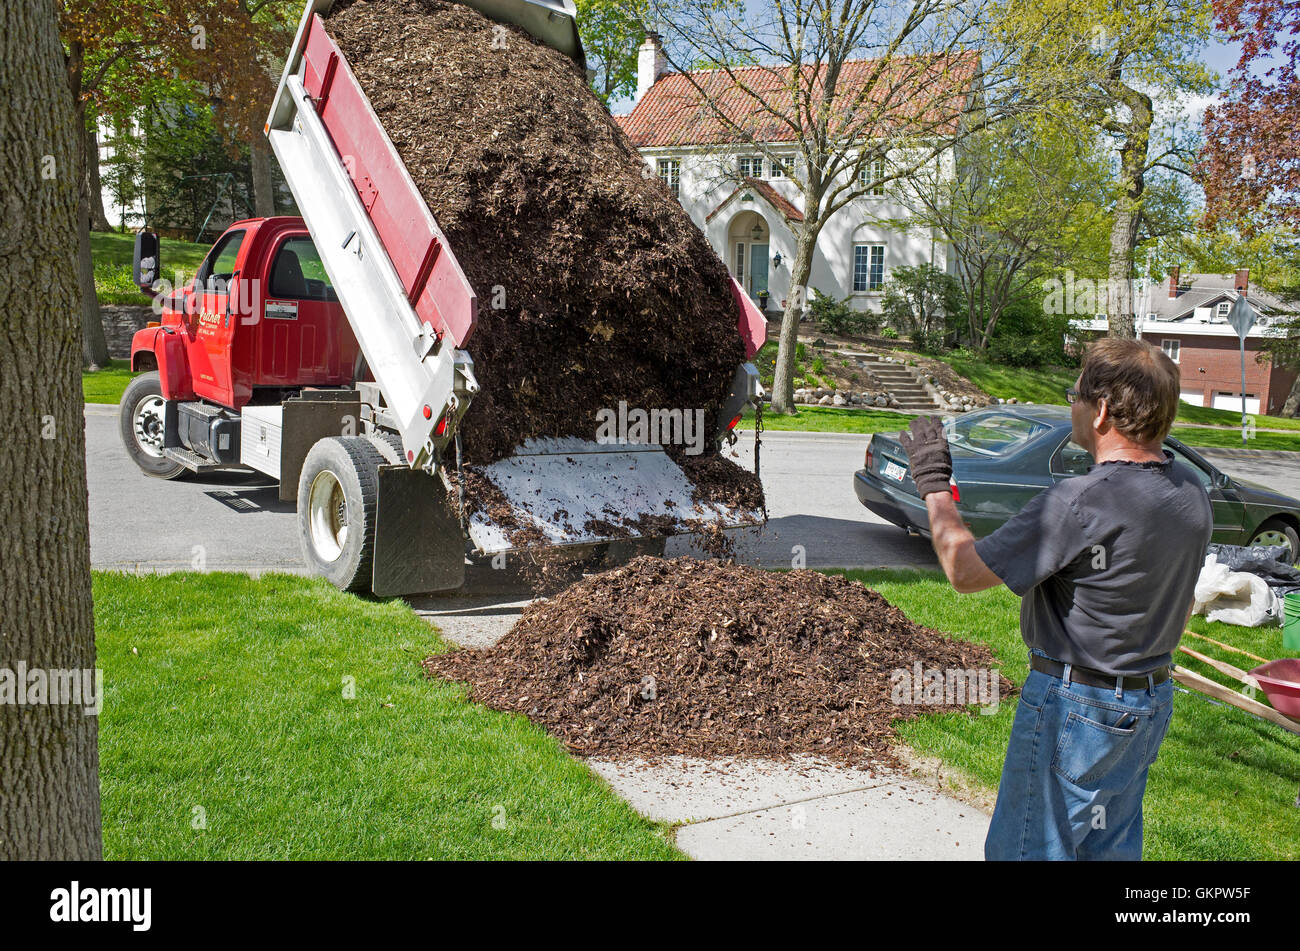 Worker directing the delivery of landscaping materials from a dump truck. St Paul Minnesota MN USA - Stock Image